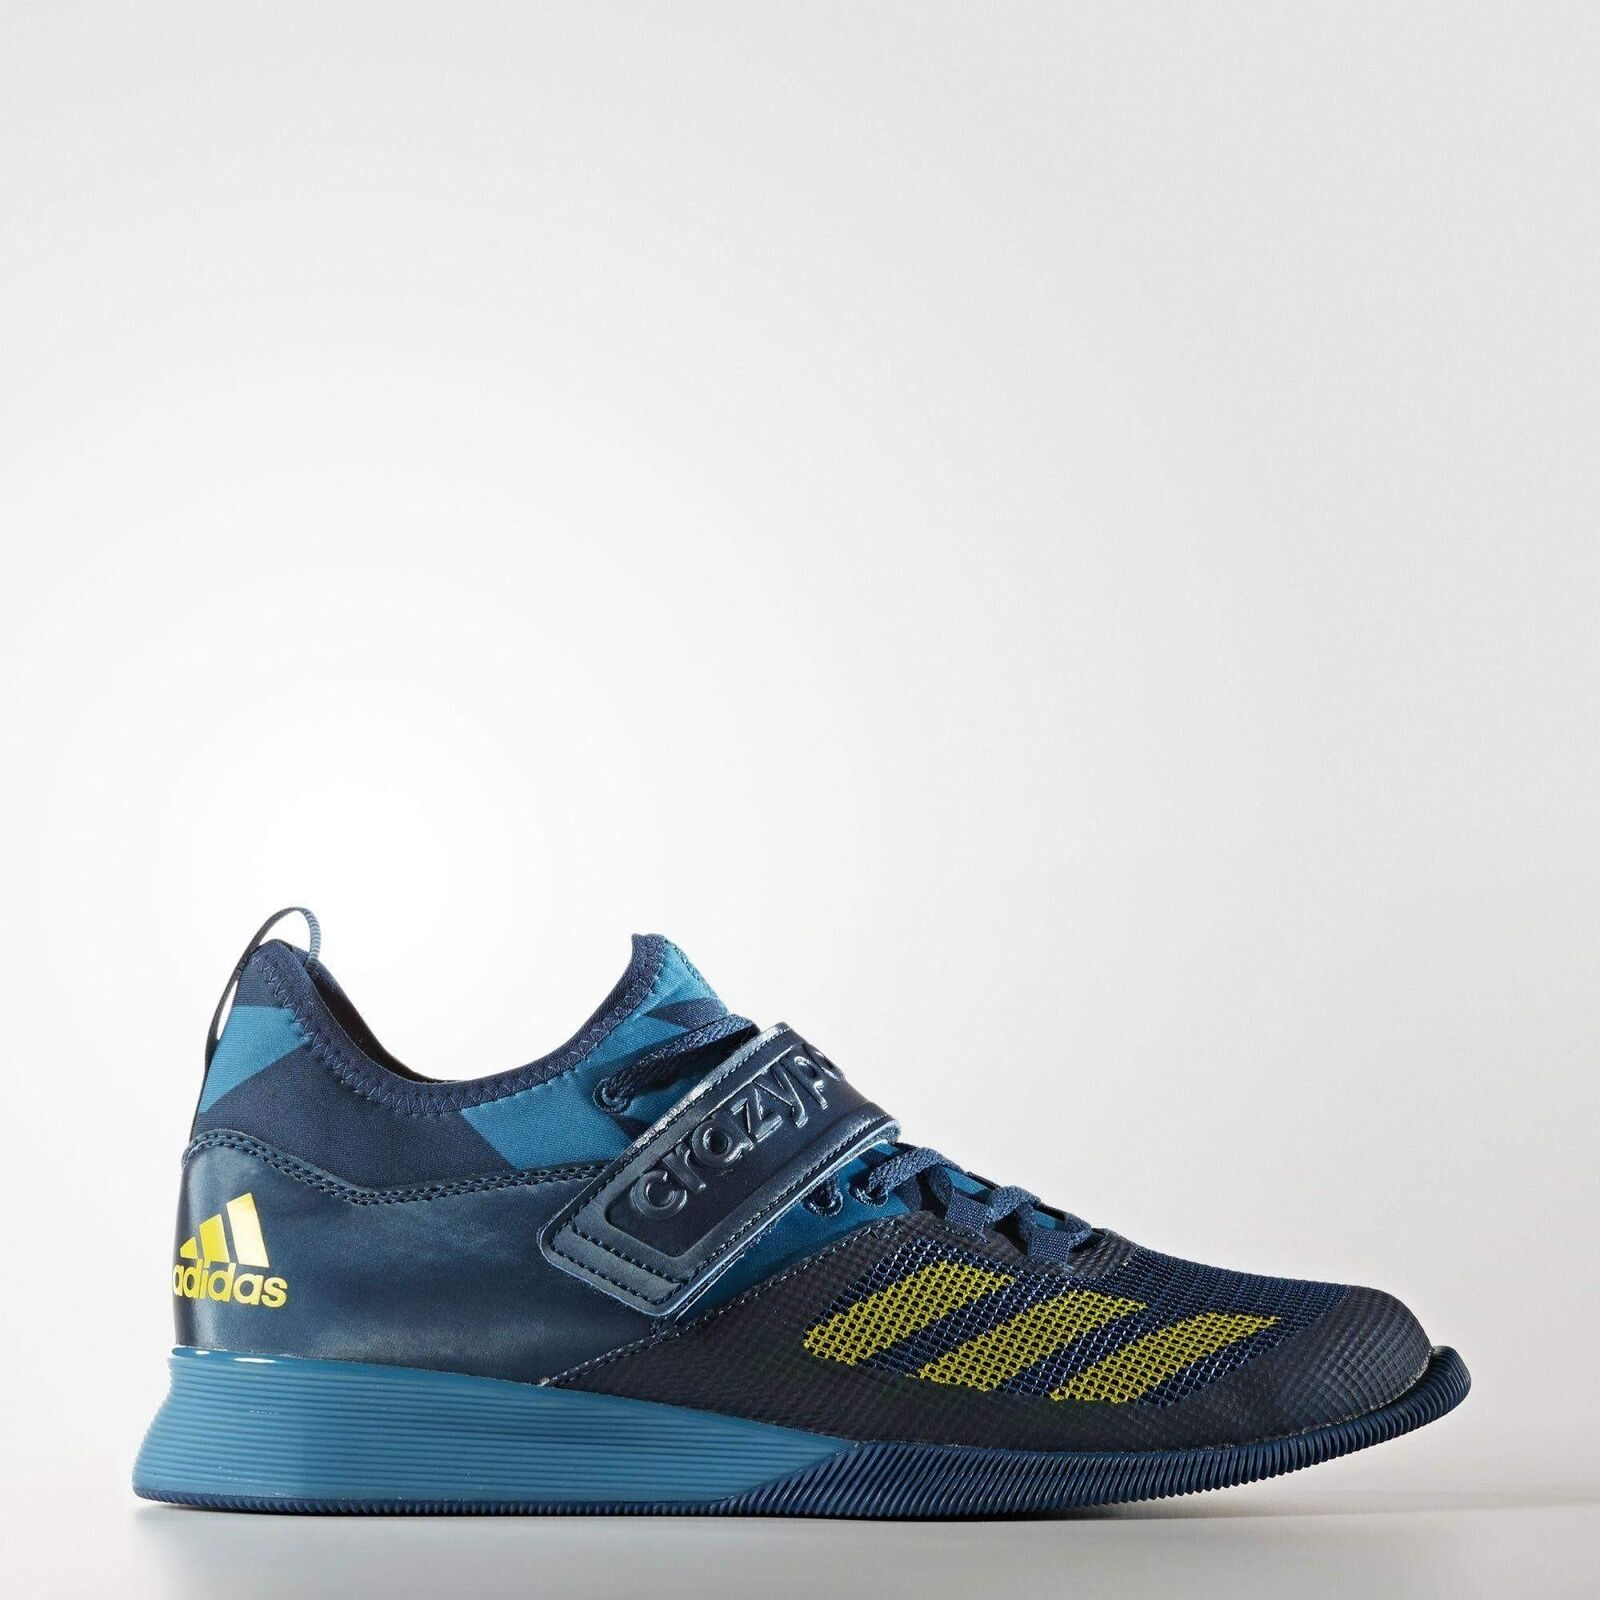 New Adidas Men's Crazy Power Weightlifting Blue Shoes Size 9 Navy Blue Weightlifting Powerlifting 35ff72